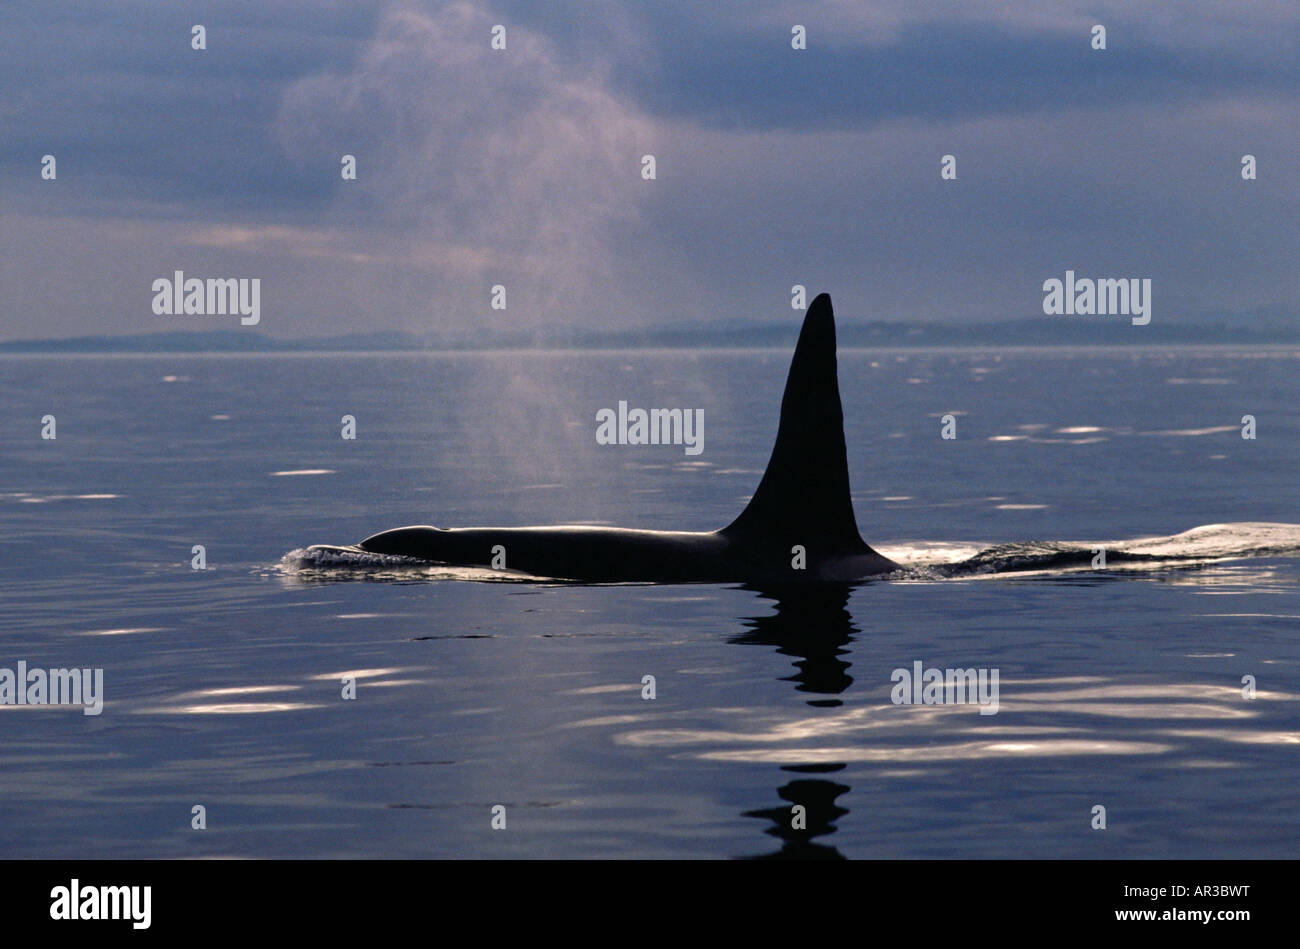 A killer whale surfacing - Stock Image